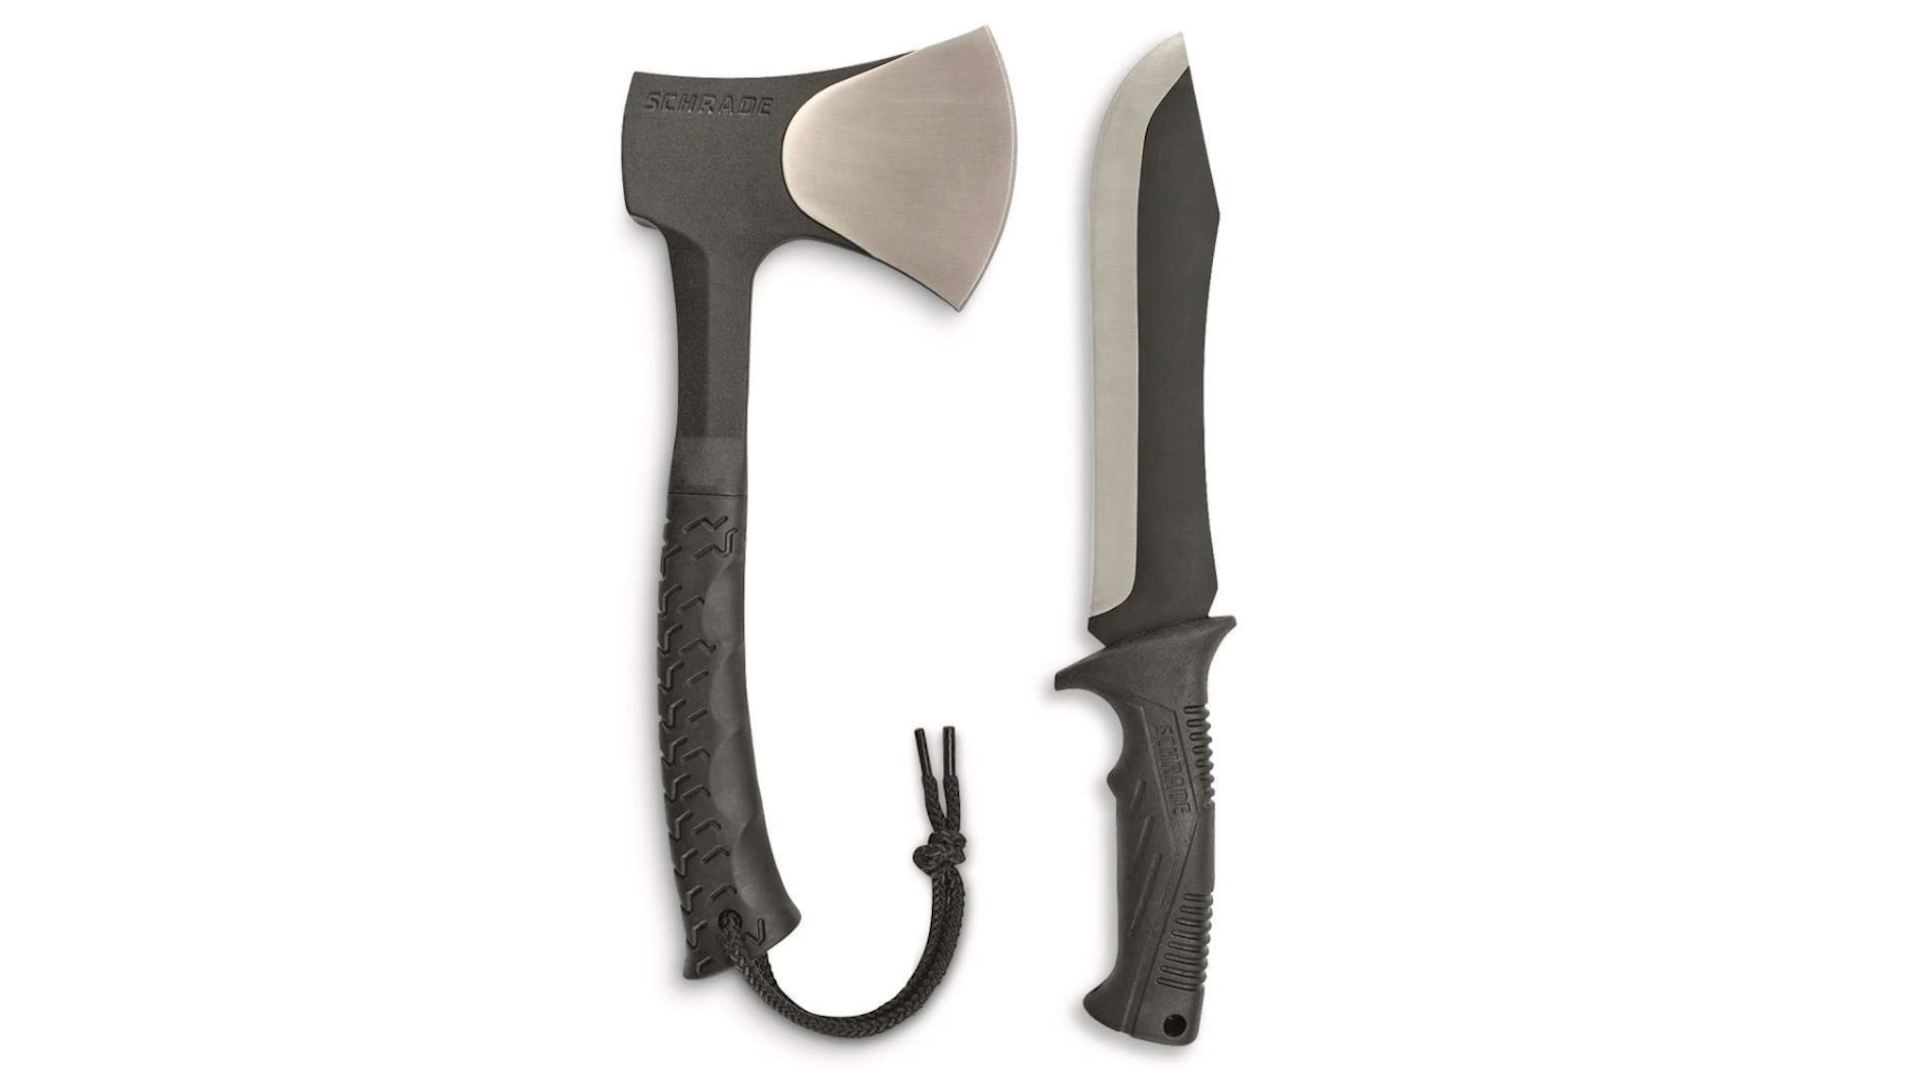 You can now score this sweet Schrade hatchet and mini-machete combo for a major discount